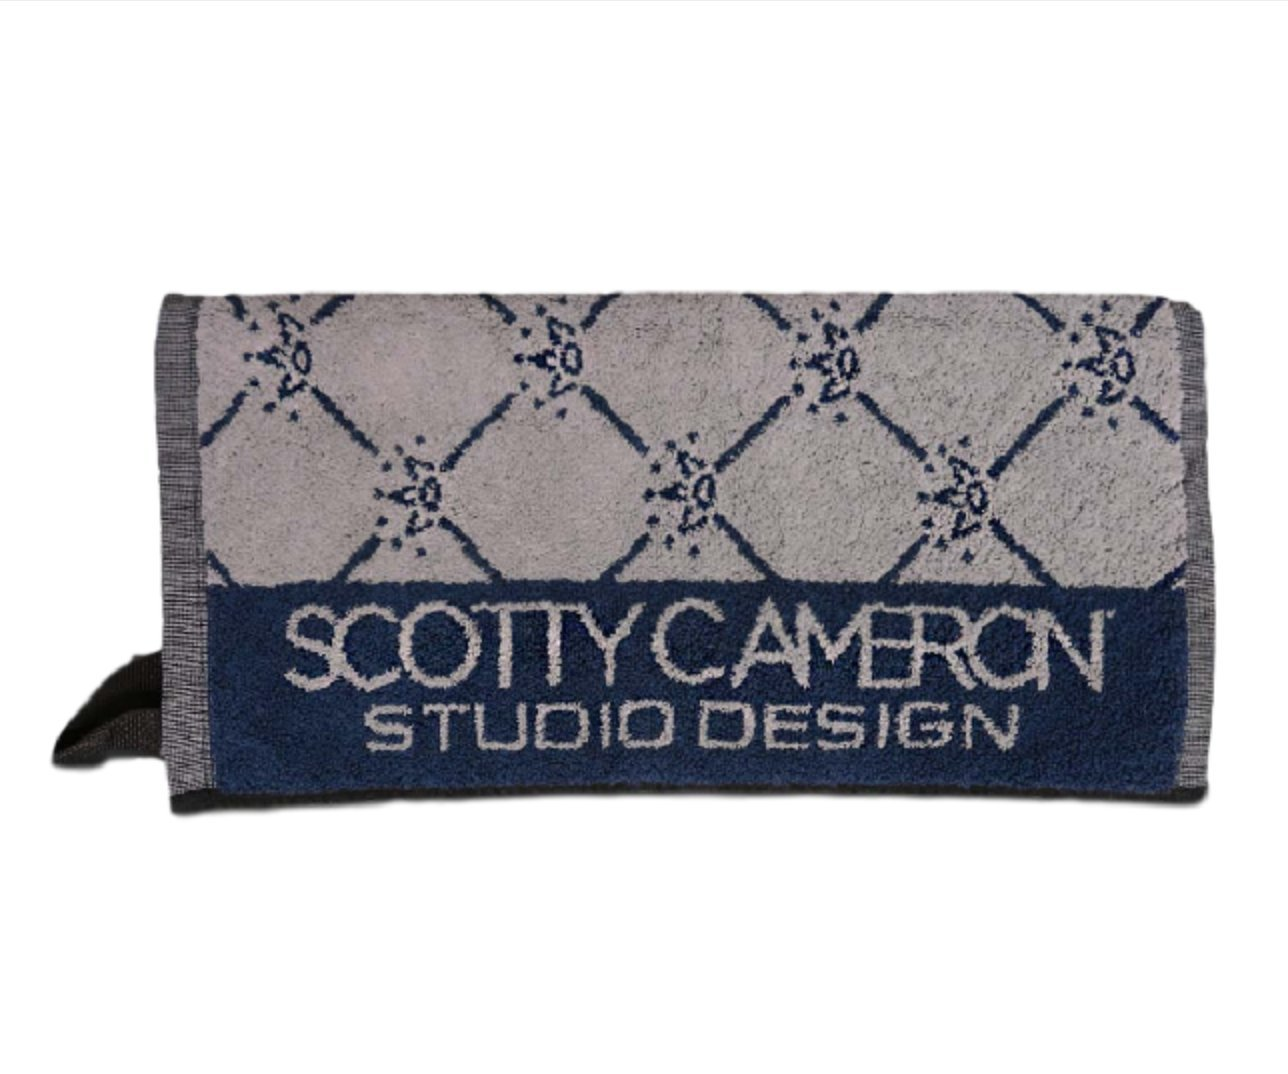 Scotty Cameron Silver & Navy 7 Point Crown Limited Edition Golf Towel 37'' x 20'' by Scotty Cameron